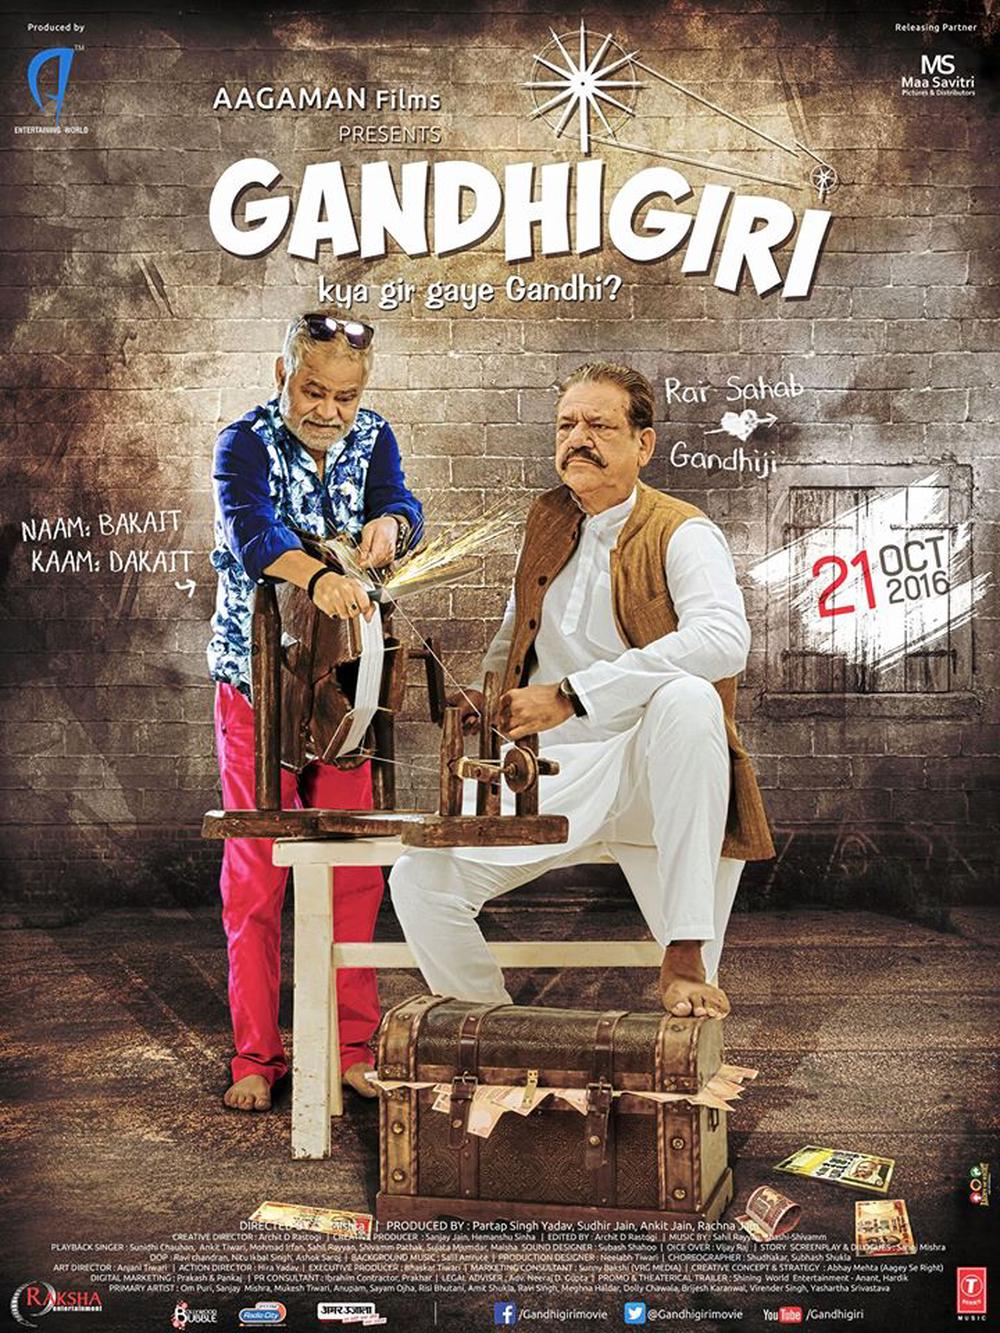 Gandhigiri Movie Review